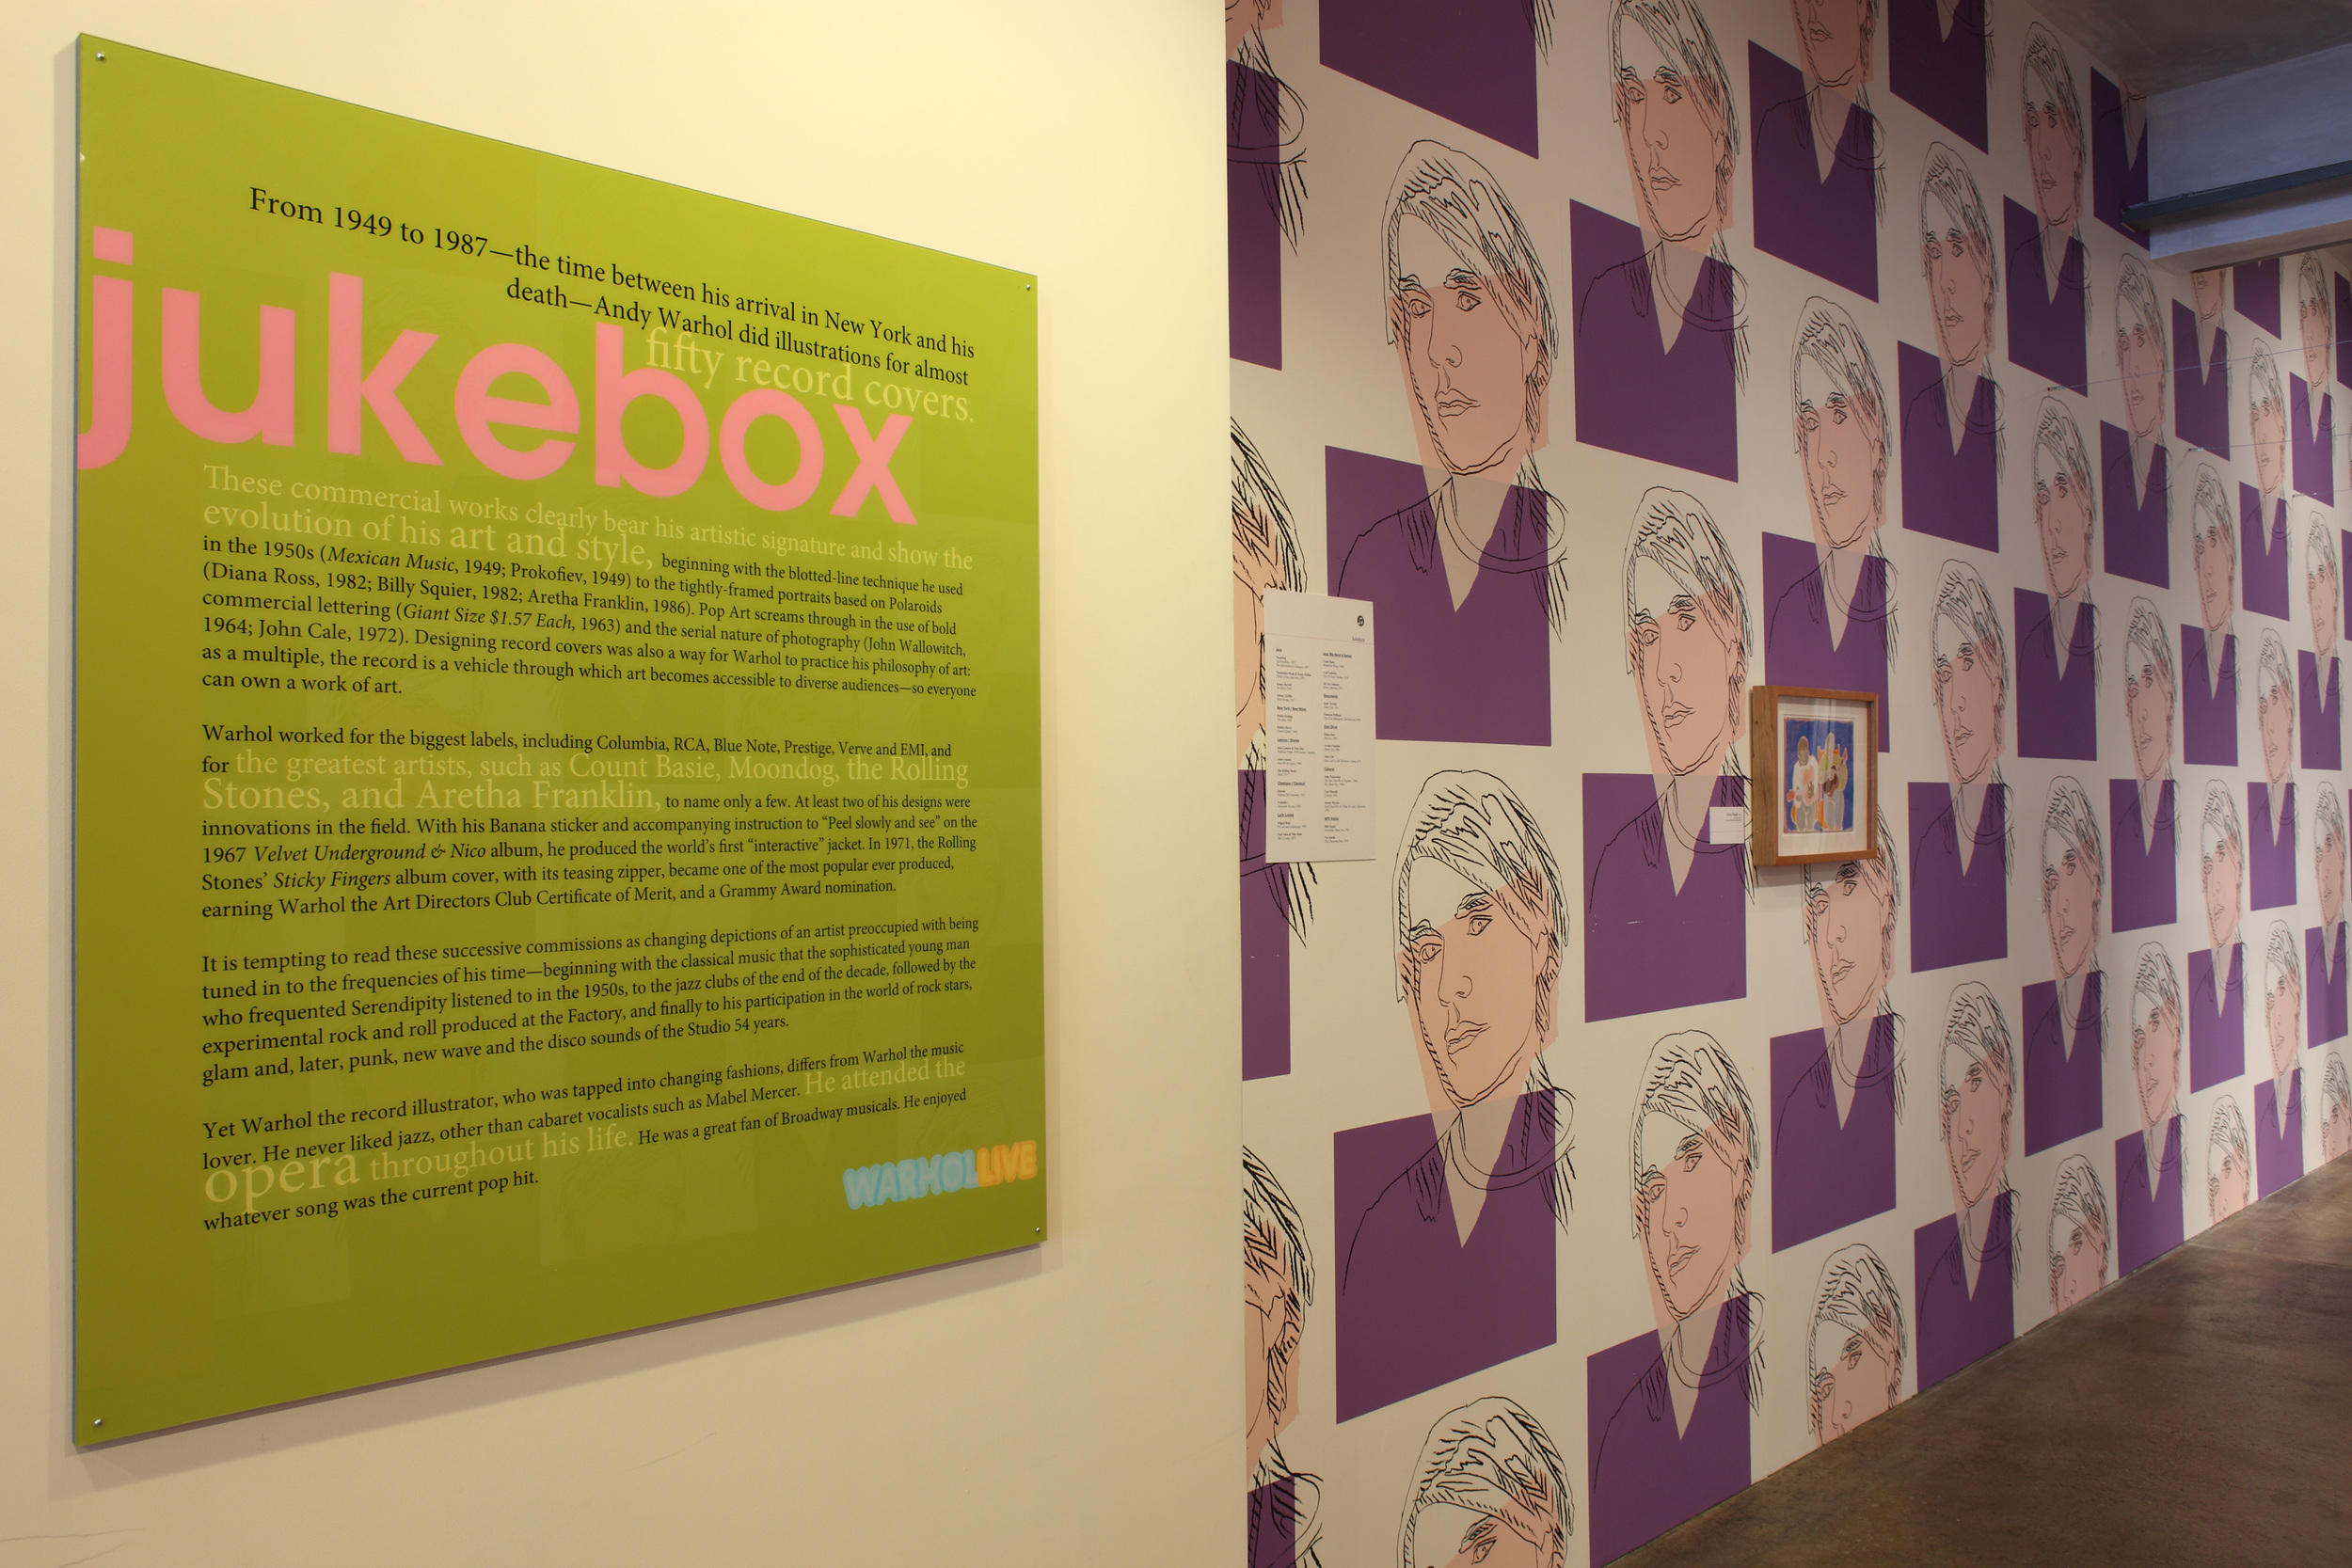 Warhol Live at The Andy Warhol Museum 0046.JPG